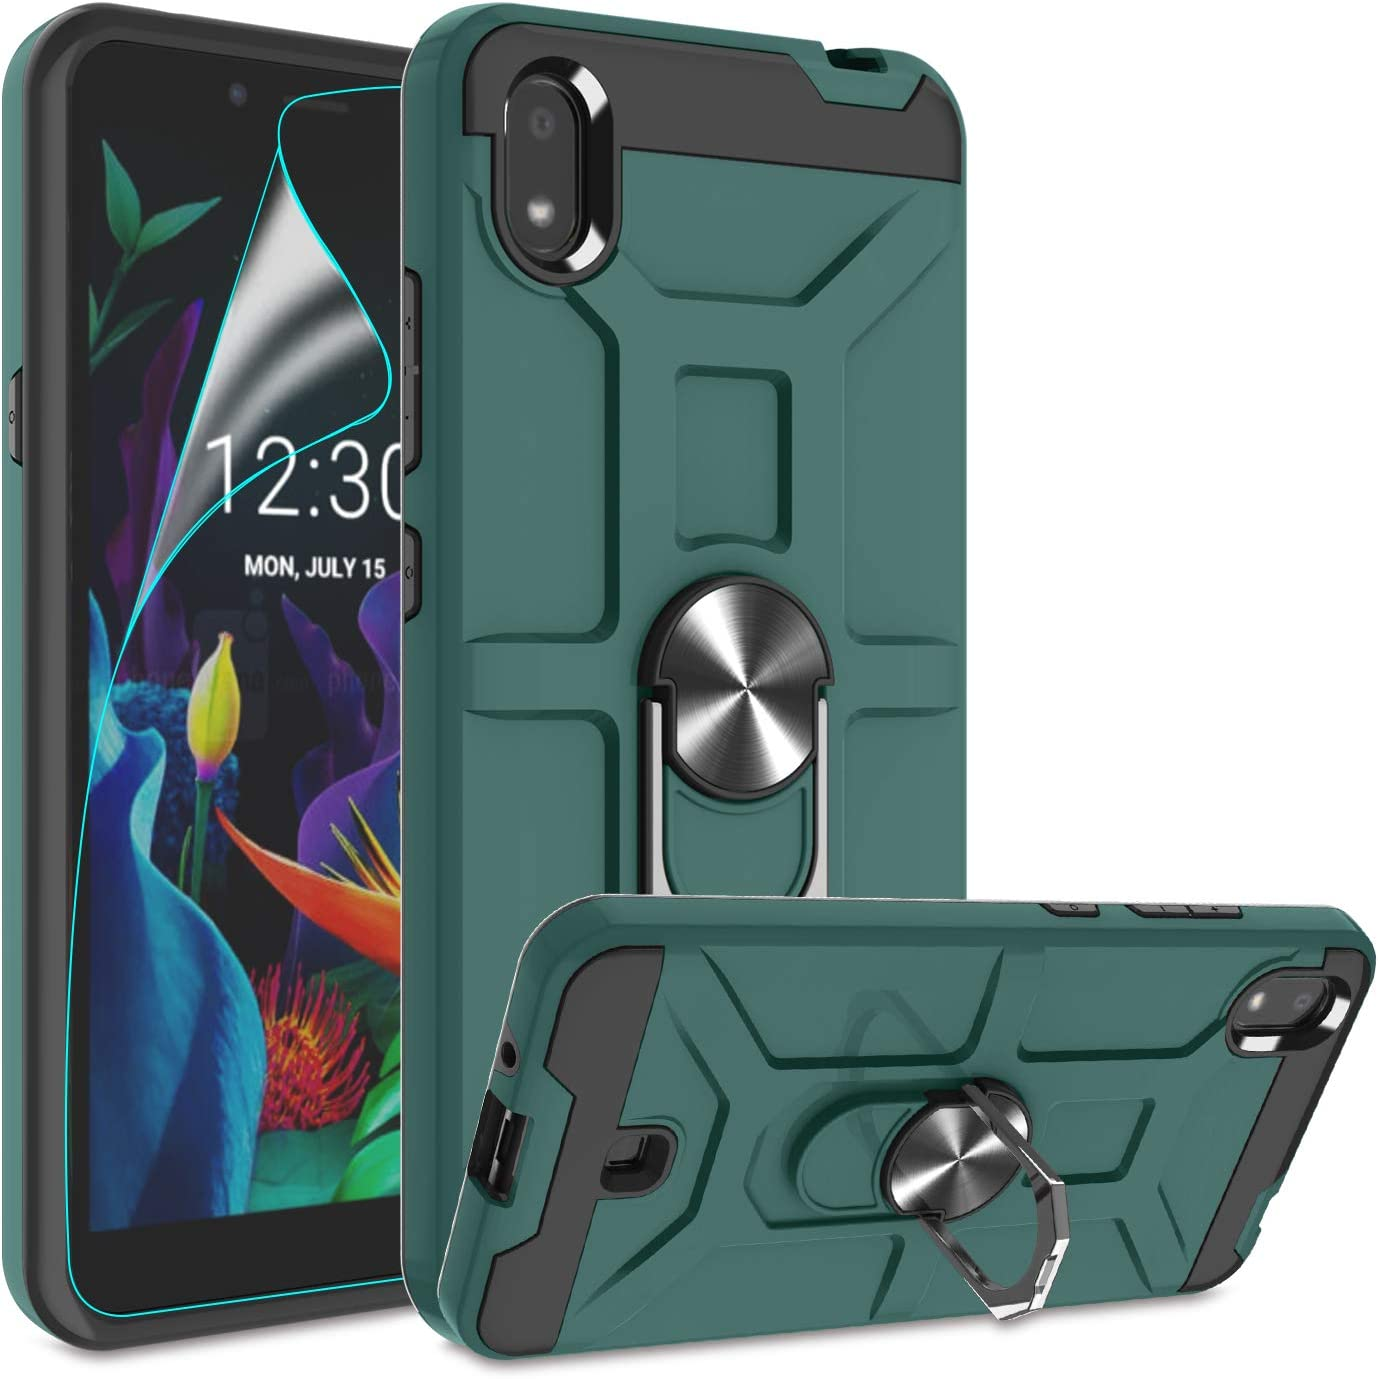 Atump LG K20 2019 Case with HD Screen Protector, 360° Rotation Ring Holder Kickstand [Work with Magnetic Car Mount] PC+ TPU Phone Case for LG K20 2019, Midnight Green